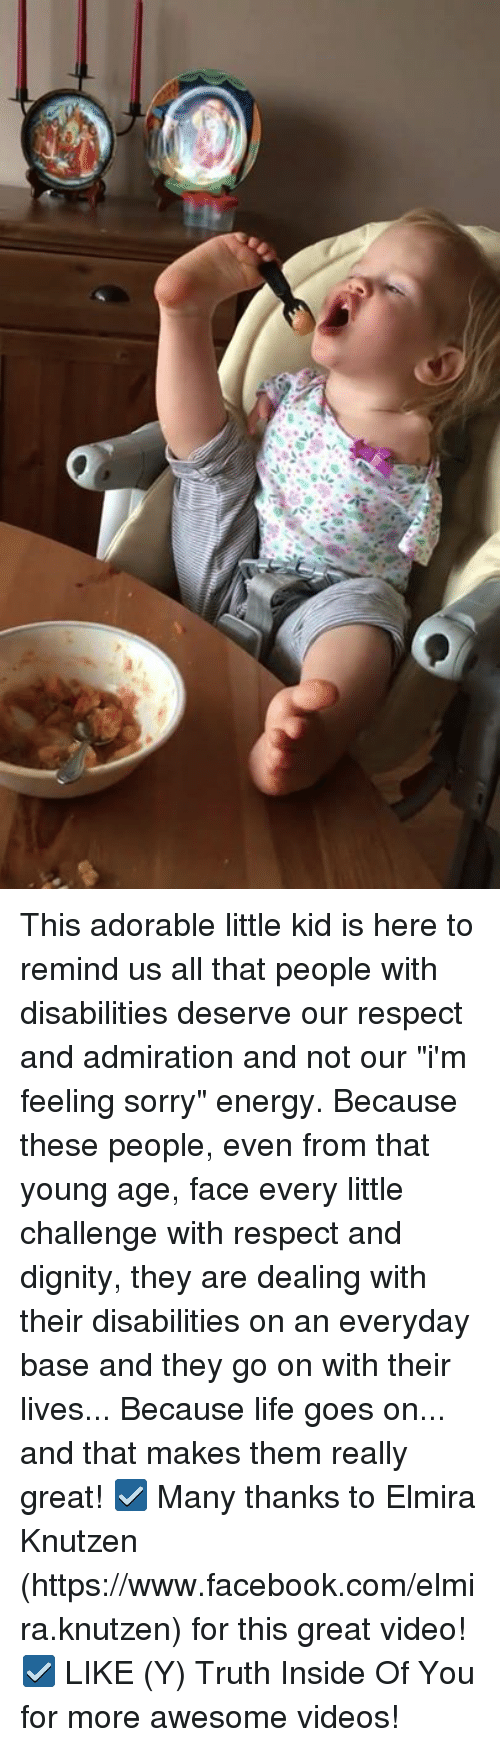 "Energy, Facebook, and Life: This adorable little kid is here to remind us all that people with disabilities deserve our respect and admiration and not our ""i'm feeling sorry"" energy. Because these people, even from that young age, face every little challenge with respect and dignity, they are dealing with their disabilities on an everyday base and they go on with their lives... Because life goes on...  and that makes them really great!  ☑ Many thanks to Elmira Knutzen (https://www.facebook.com/elmira.knutzen) for this great video! ☑ LIKE (Y) Truth Inside Of You for more awesome videos!"